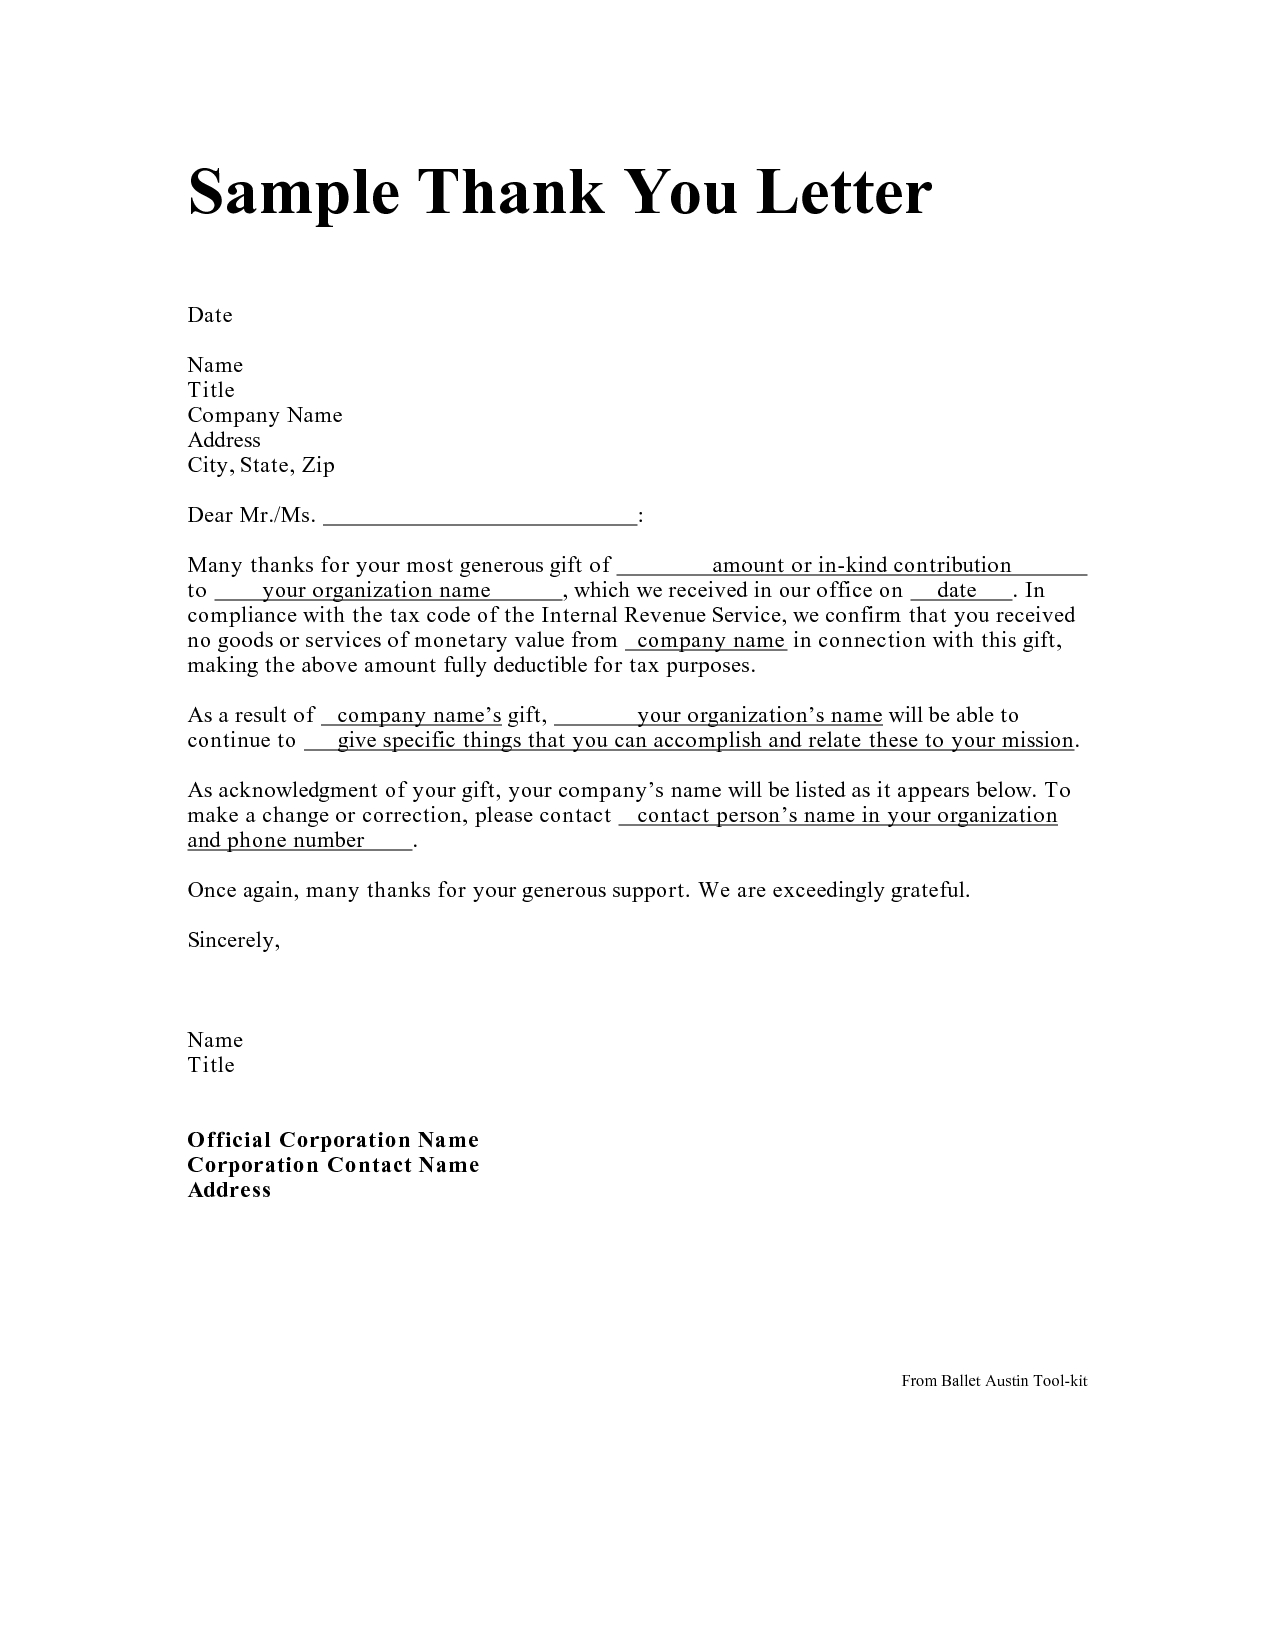 wedding welcome letter template example-Personal Thank You Letter Personal Thank You Letter Samples Writing Thank You Notes Thank You Note Examples 8-d